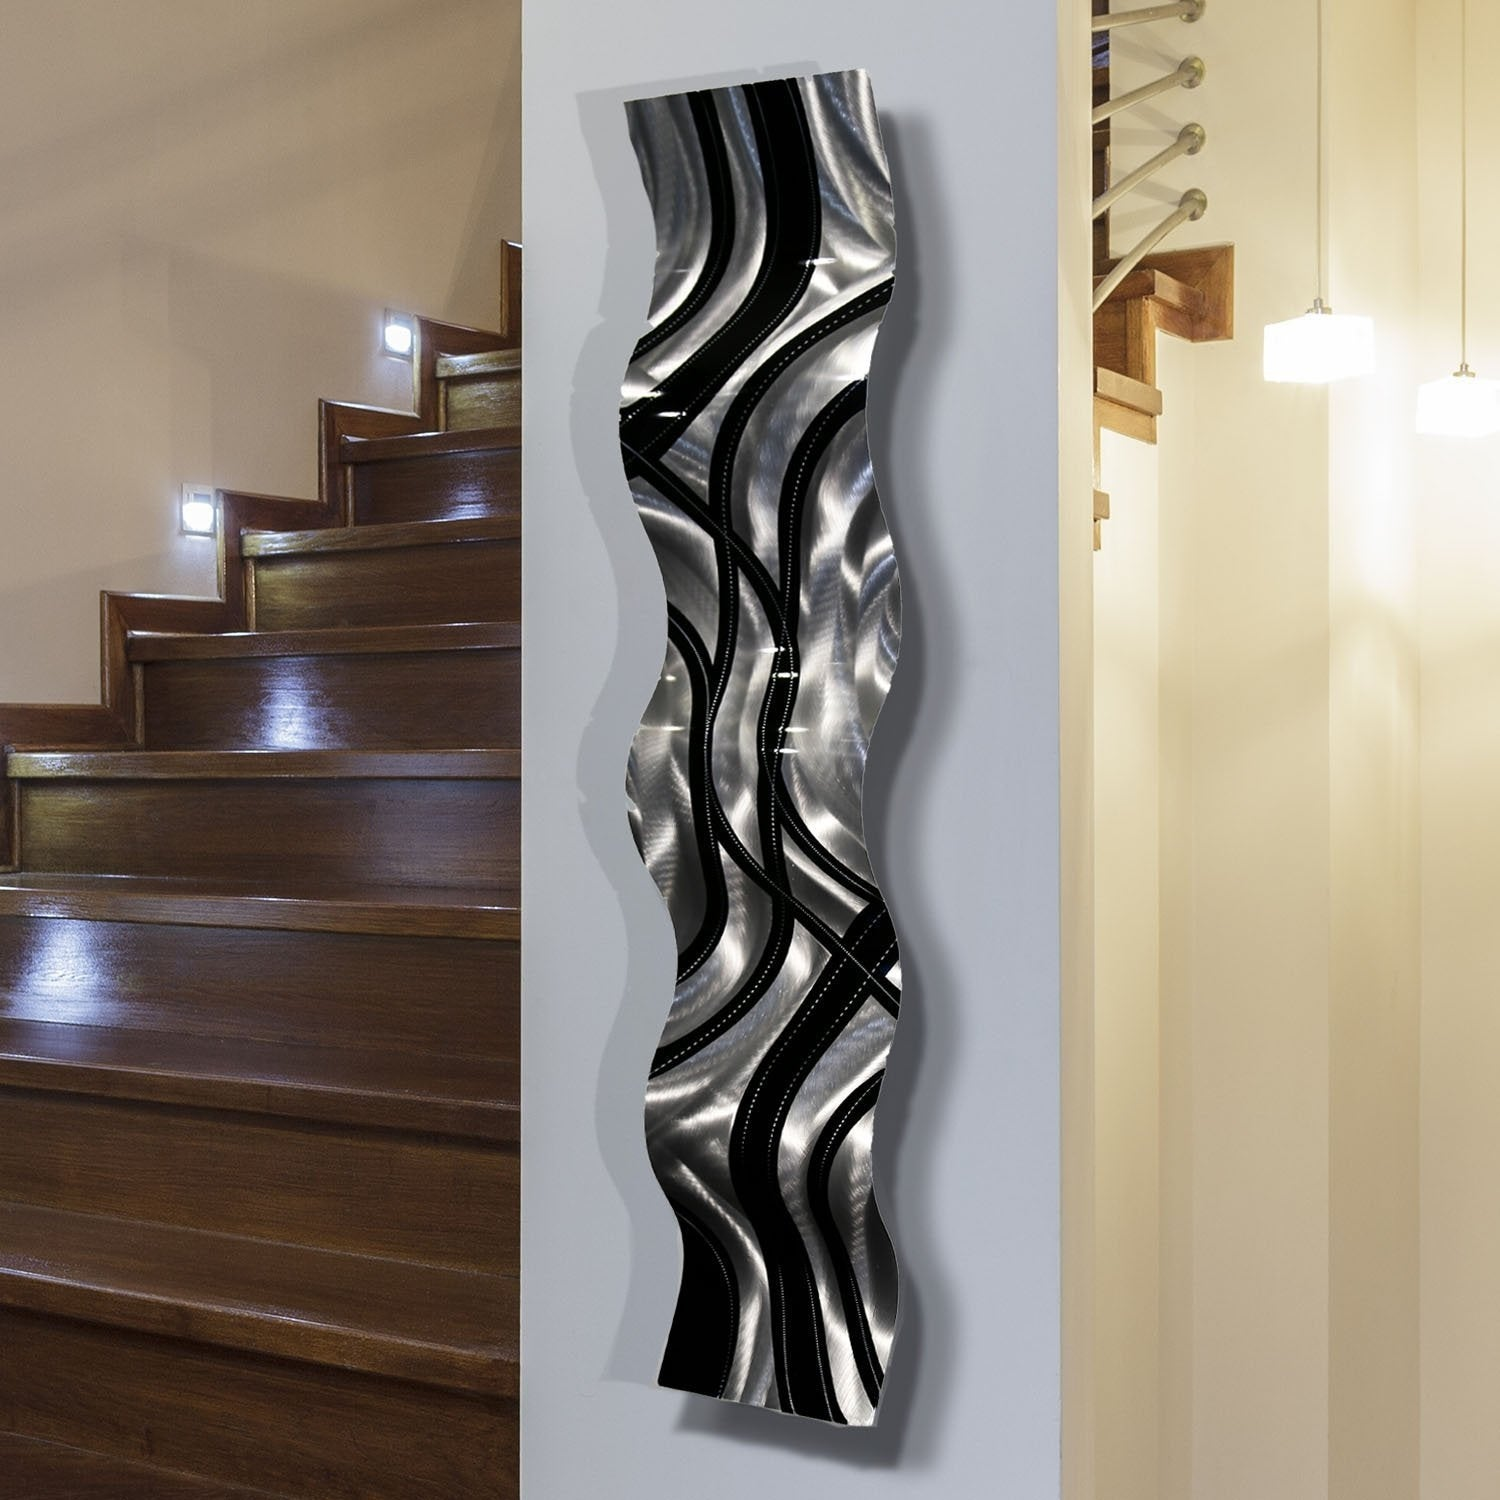 Shop Statements2000 Black/Silver Abstract Metal Wall Art ...